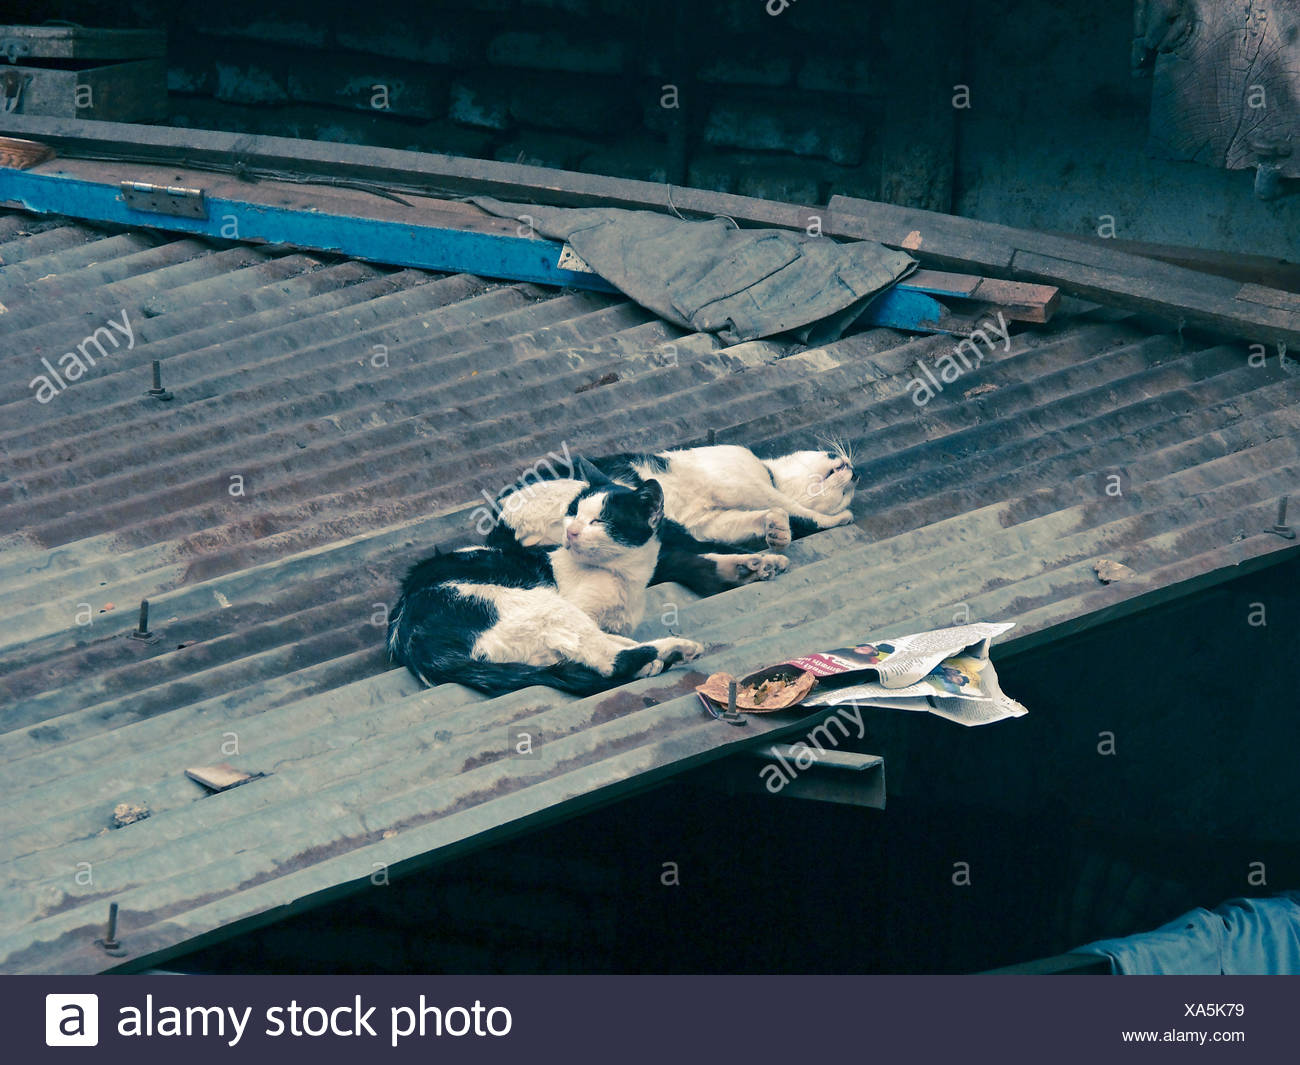 Cats on a roof of Galvanized sheet - Stock Image